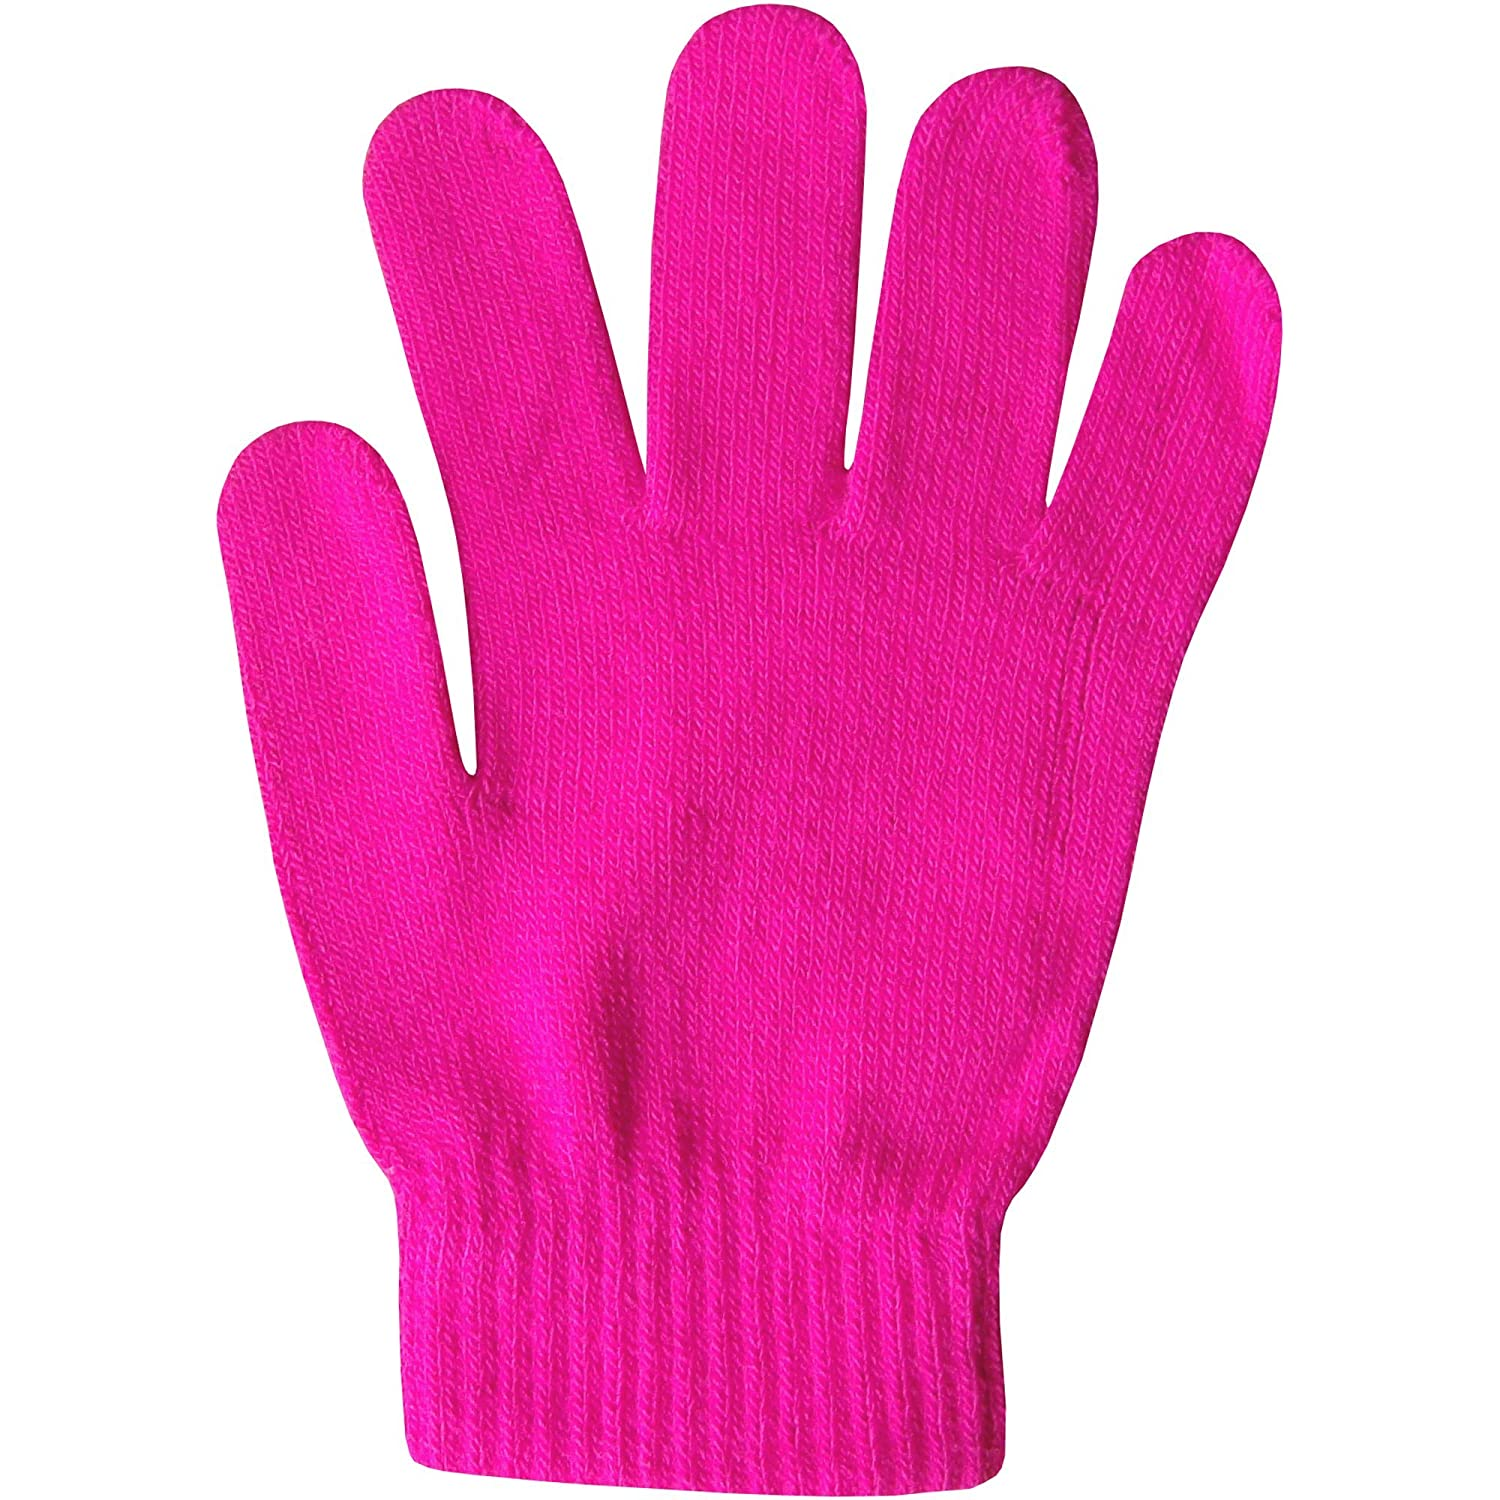 Boy's & Girl's Unisex Fluorescent Super Soft Fine Knit Neon Magic Winter Gloves NeonGlovesKidsPNK